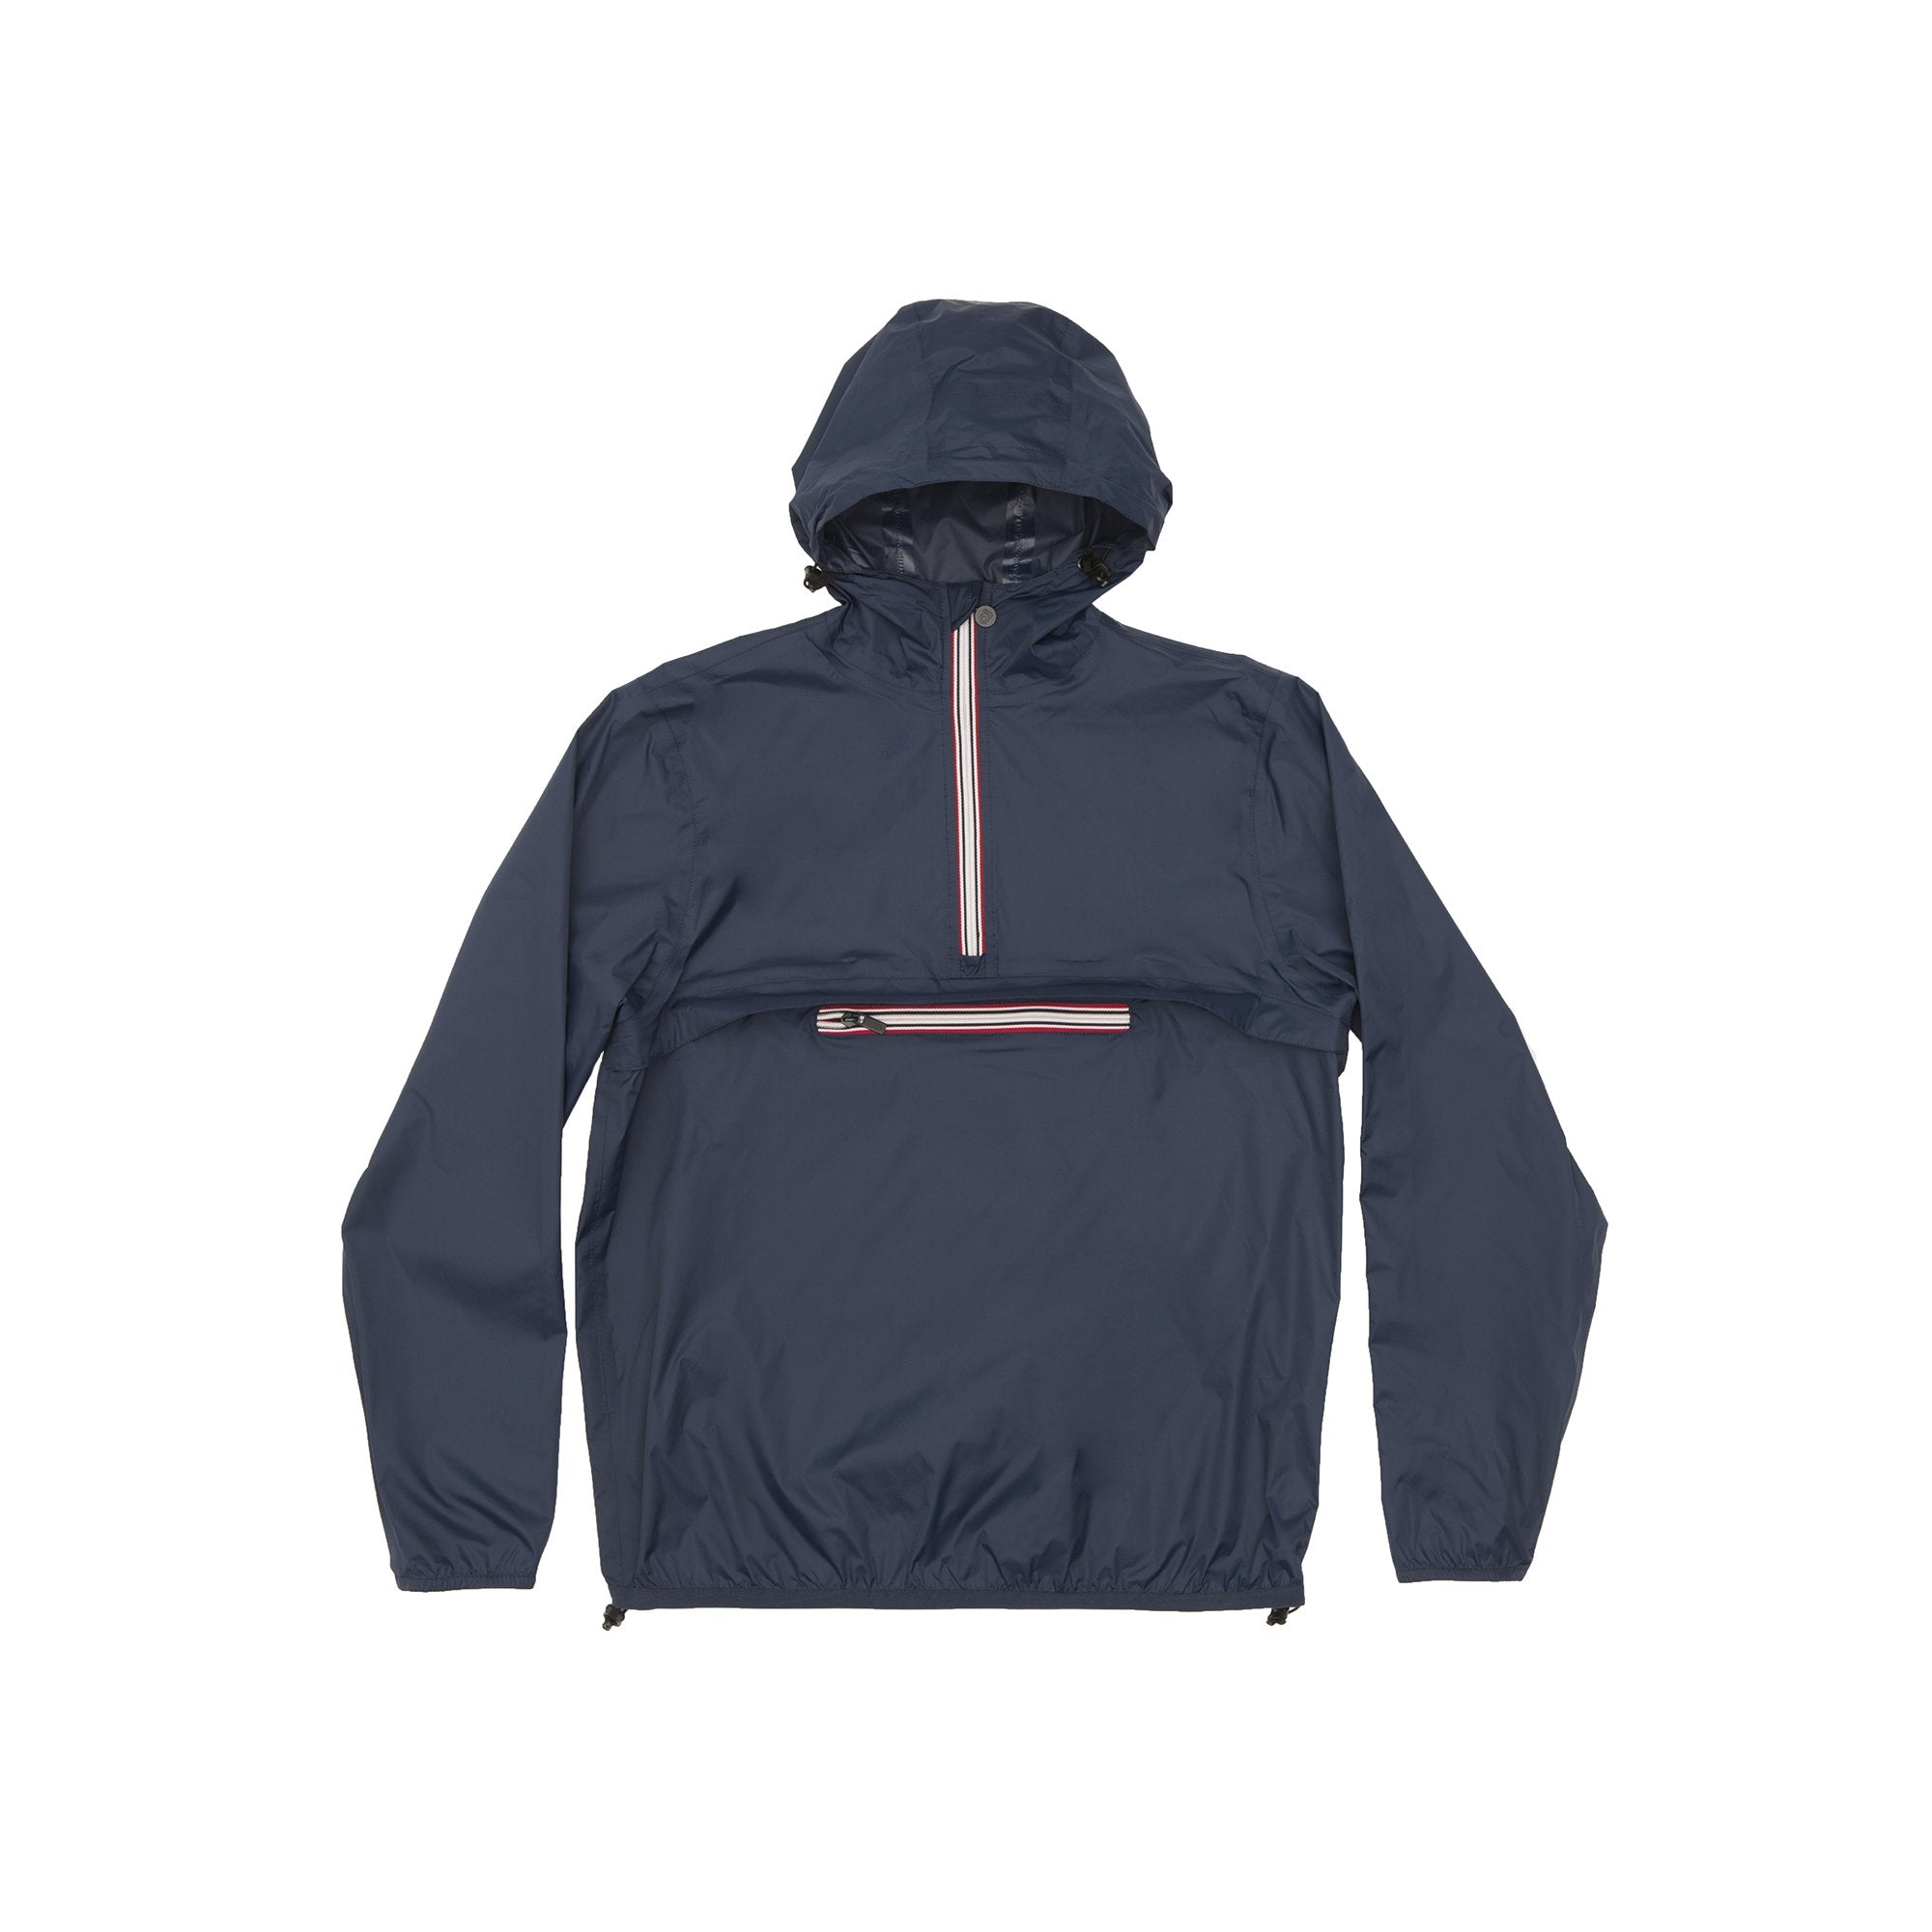 Navy Quarter Zip Packable Jacket